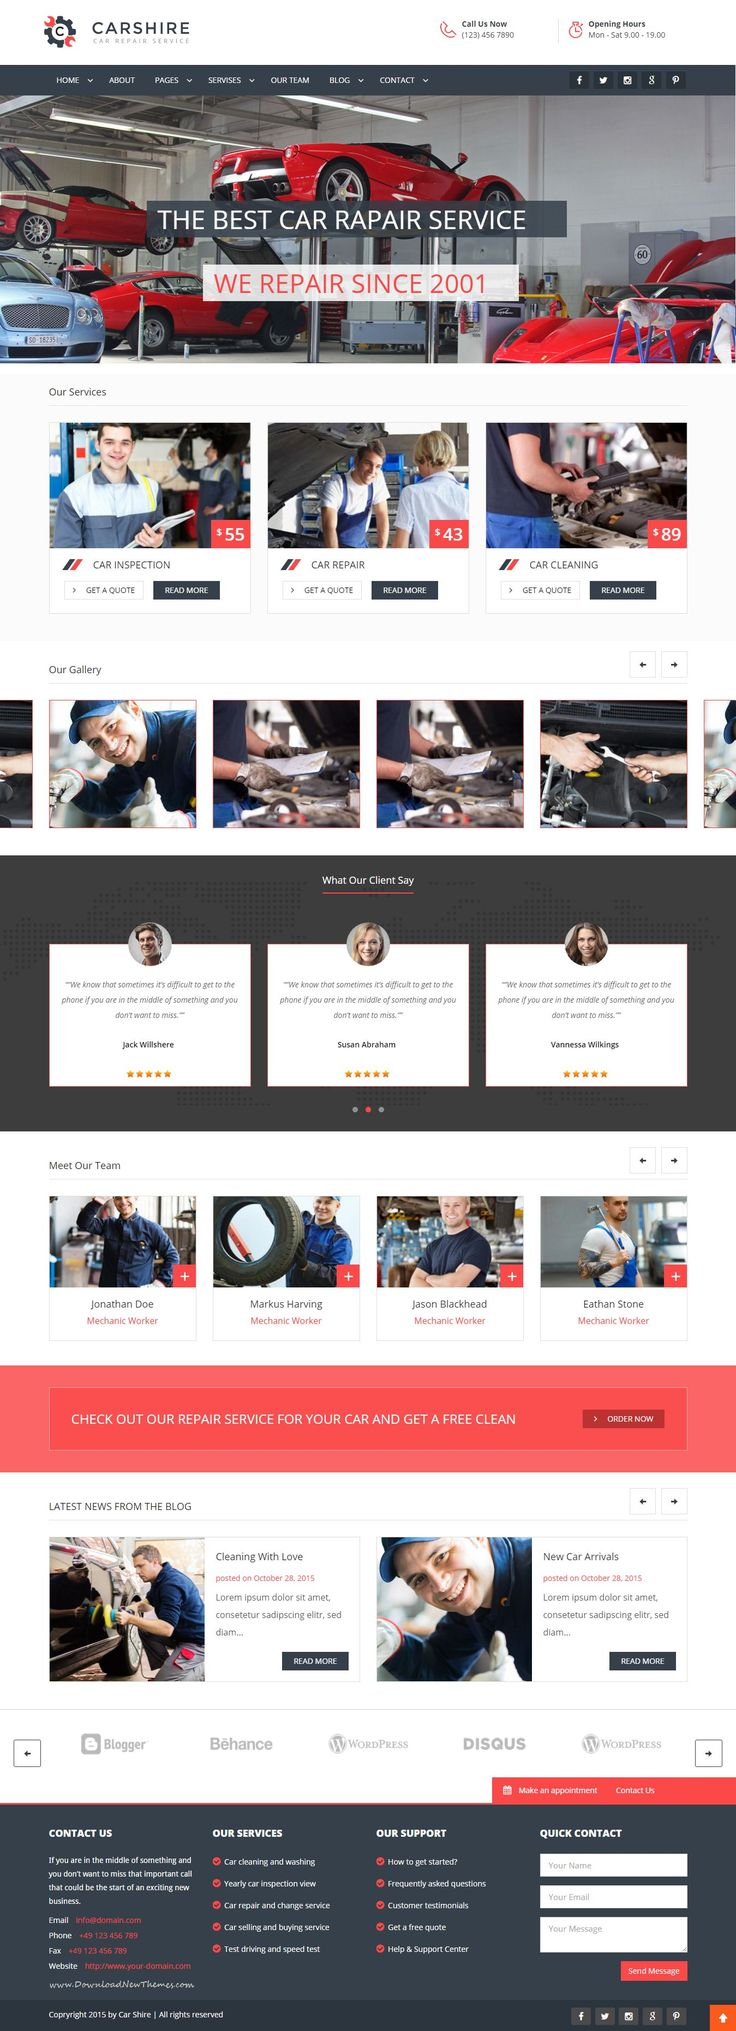 The template is built for Auto Mechanic, #Car Repair Shops, Car Wash, Garages, Automobile Mechanical, Mechanic #Workshops, Auto Painting, Auto Centers and other Auto and Car related services and it is suitable for any kind of small business activity Spectacular #Website design.